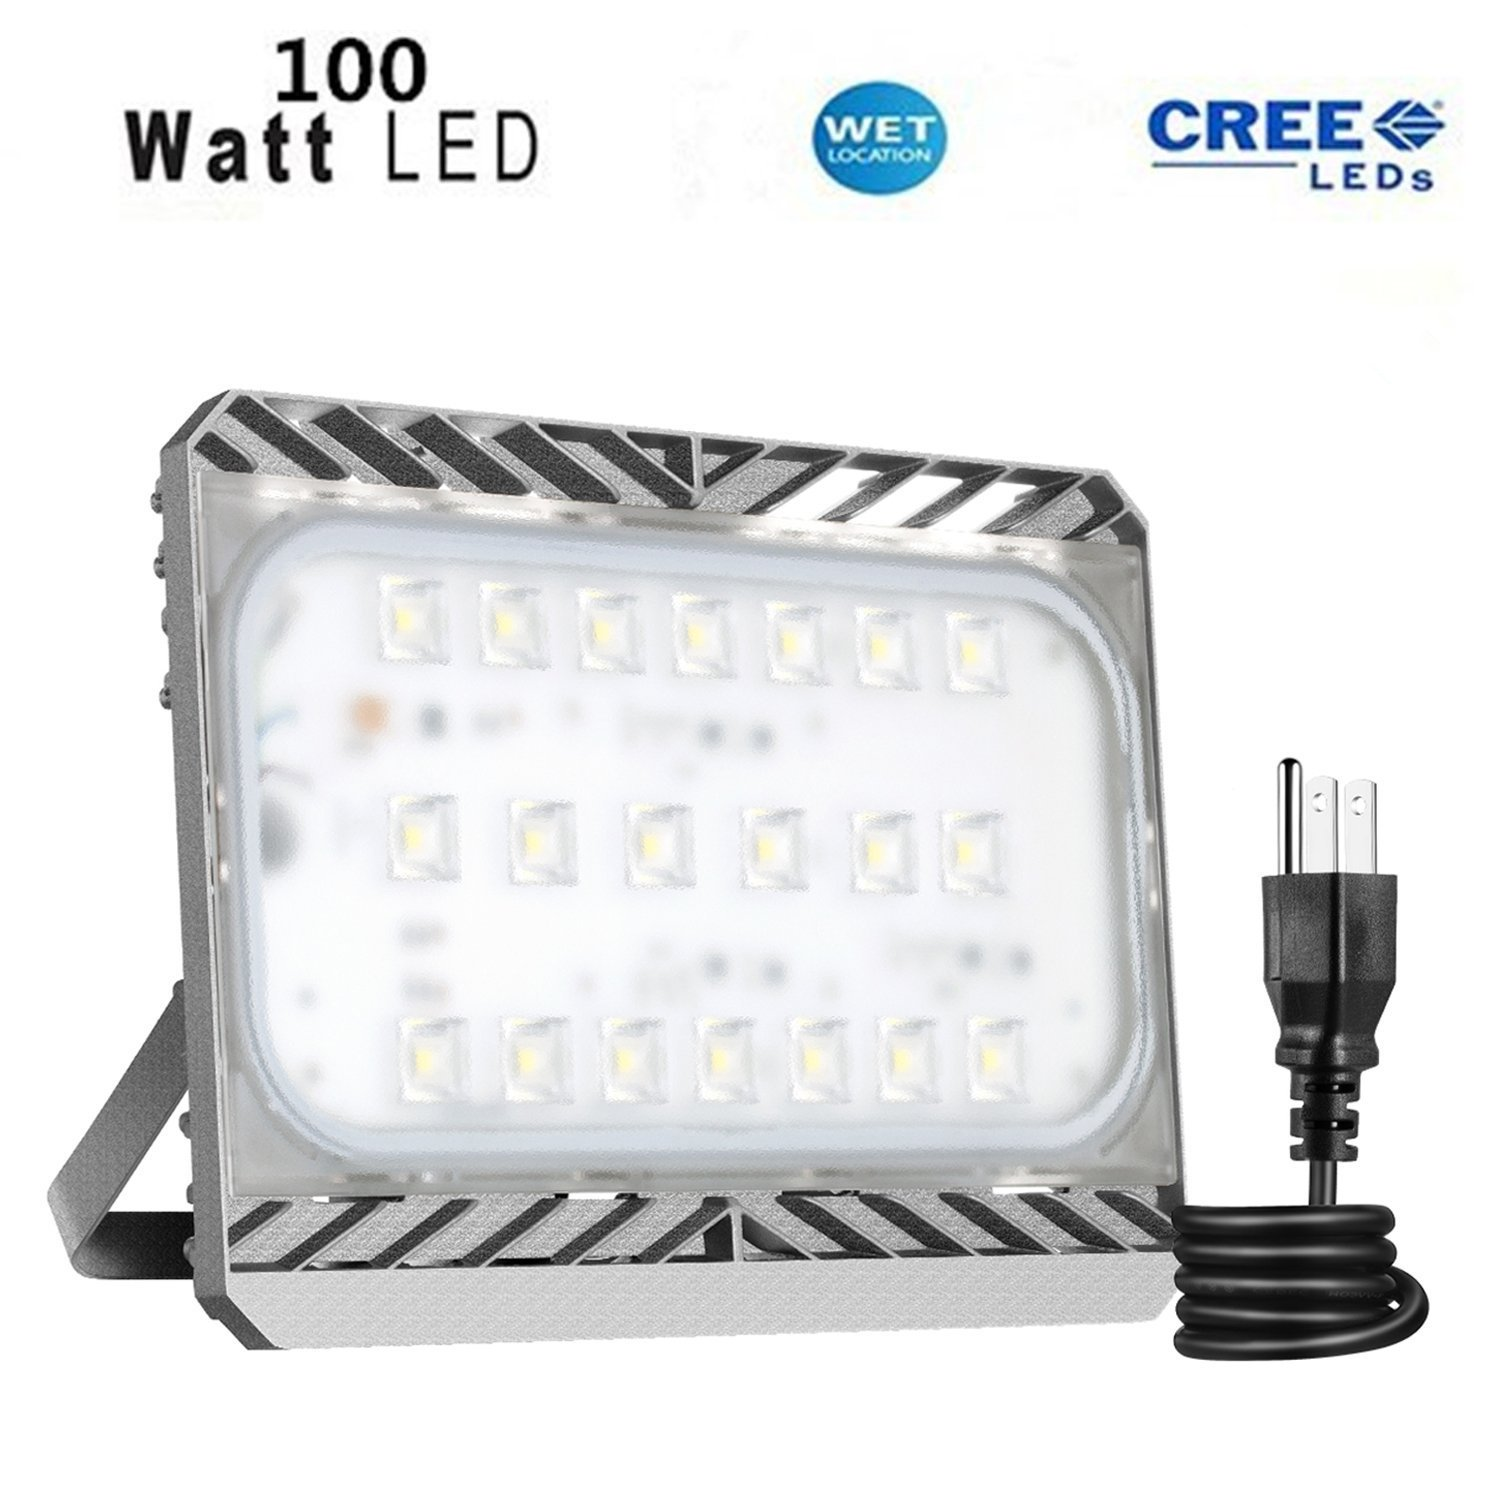 LED Flood Light with Plug, 100W Outdoor Lighting Waterproof Security Light, Super Bright CREE LED Chips,9000LM 3000K Warm White,Adjustable Wall Mount Exterior Light Fixture for Yard Street Parking Lot